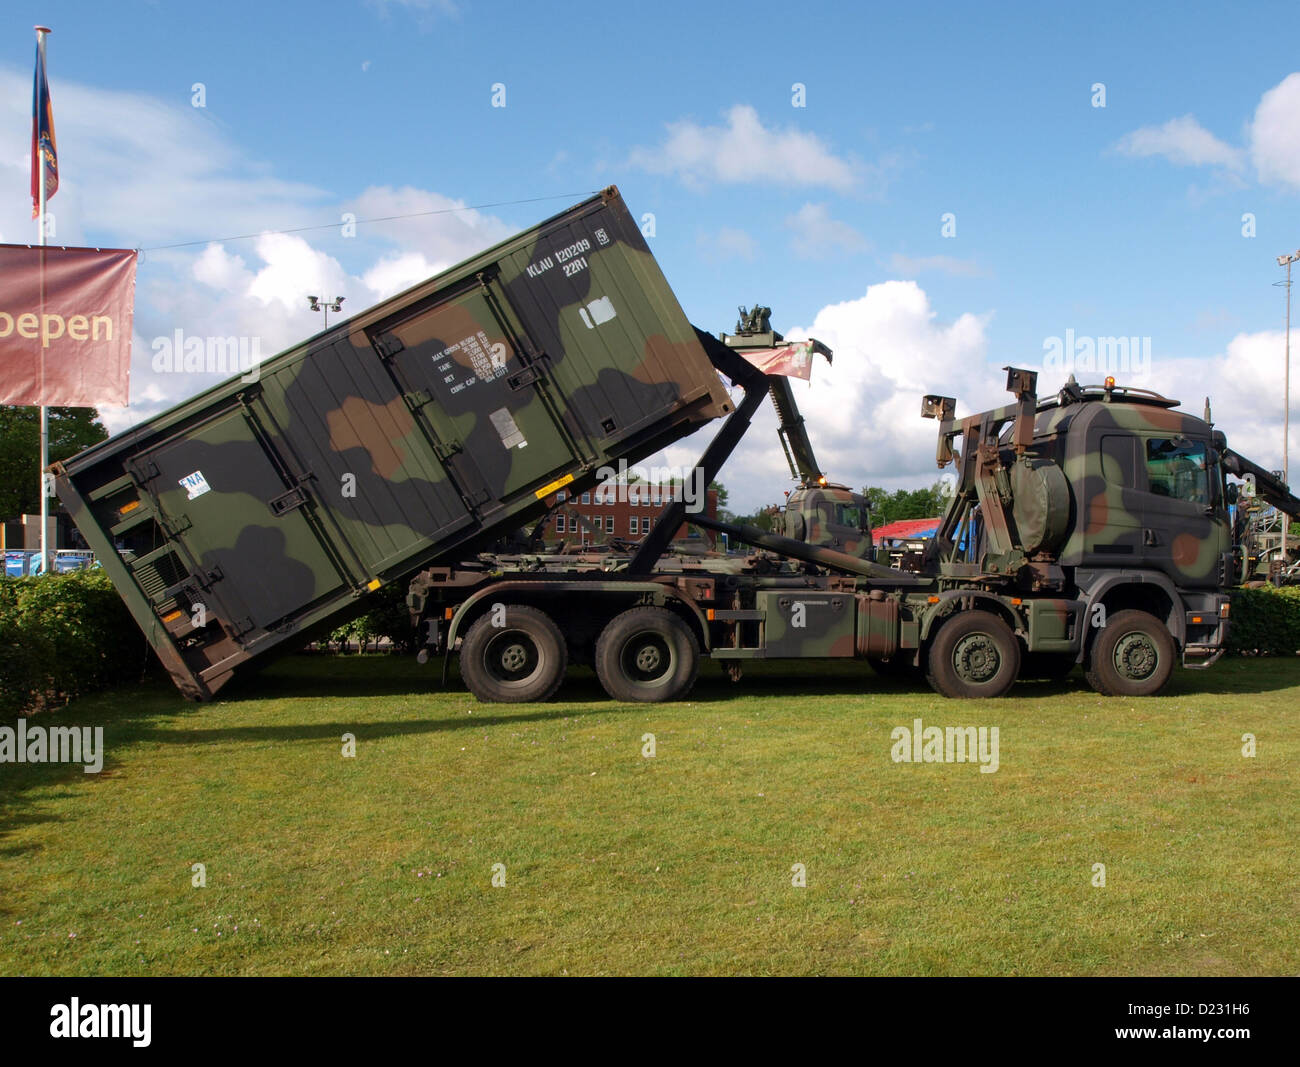 Army Open Day 2012 in the Netherlands Oirschot, Stock Photo